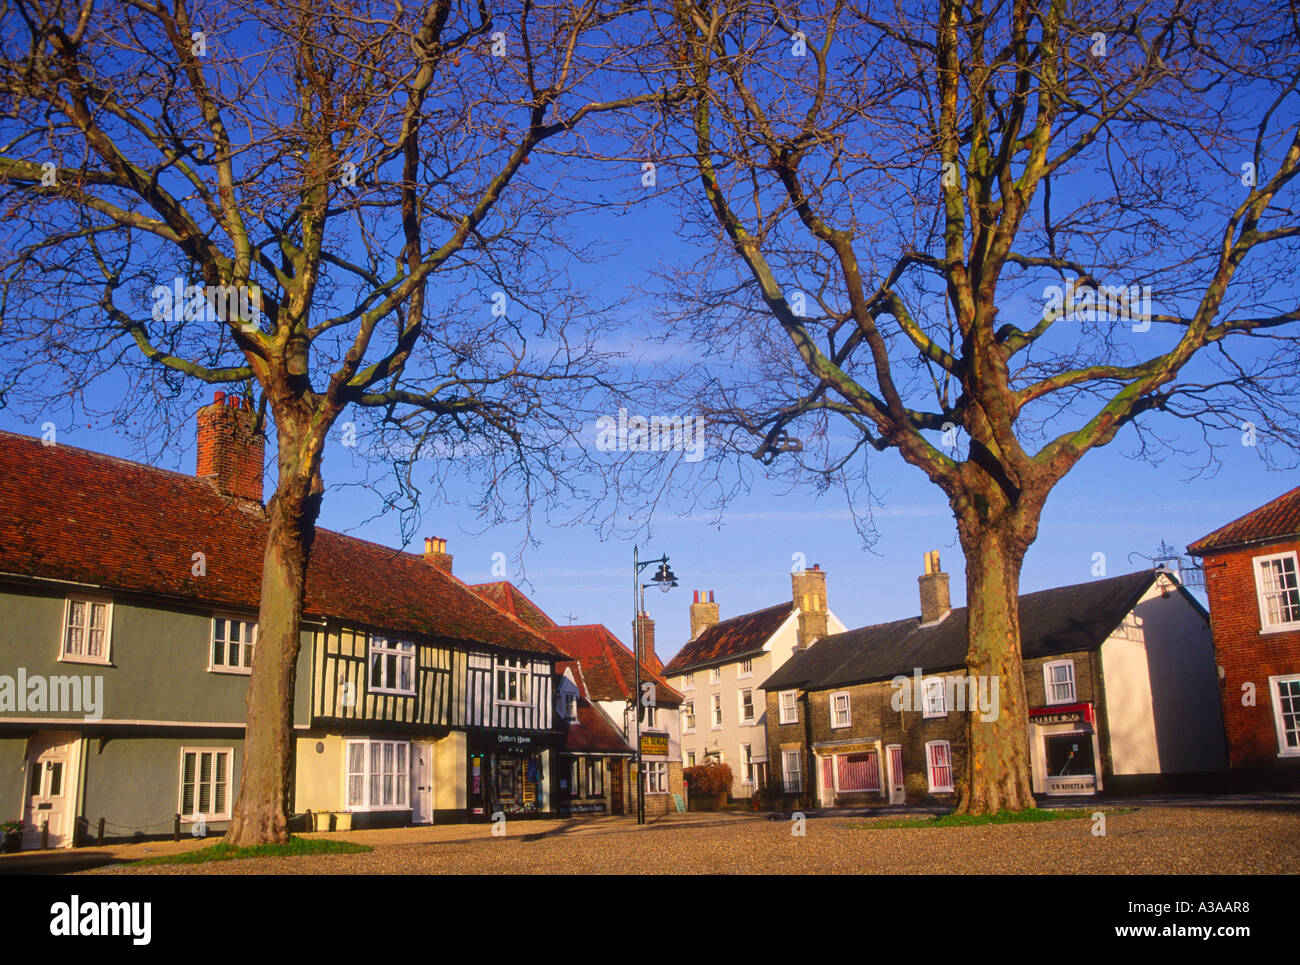 Buildings and trees Market Square Wickham Market Suffolk England - Stock Image